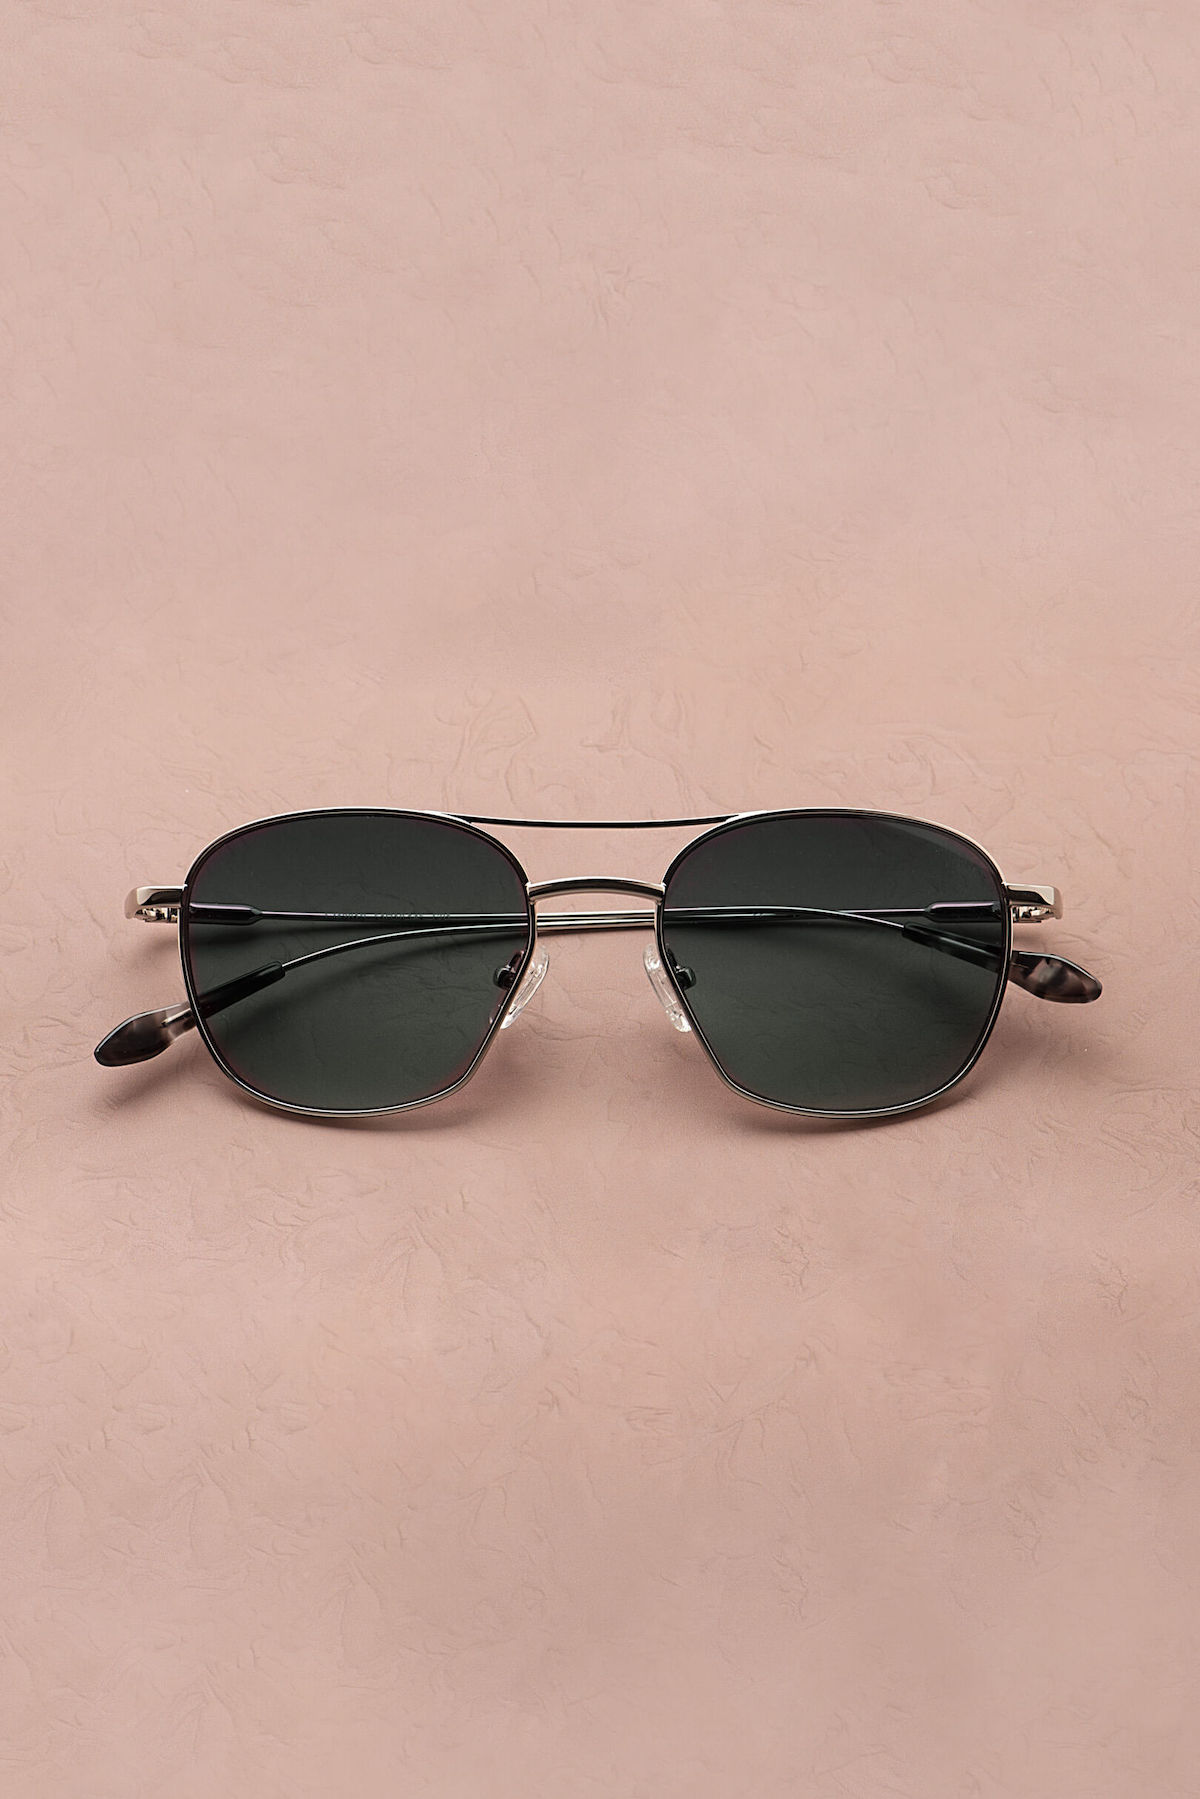 046fba4a0a Lunette de soleil Laura Johns - LJ4201S Aviator - Optic Duroc